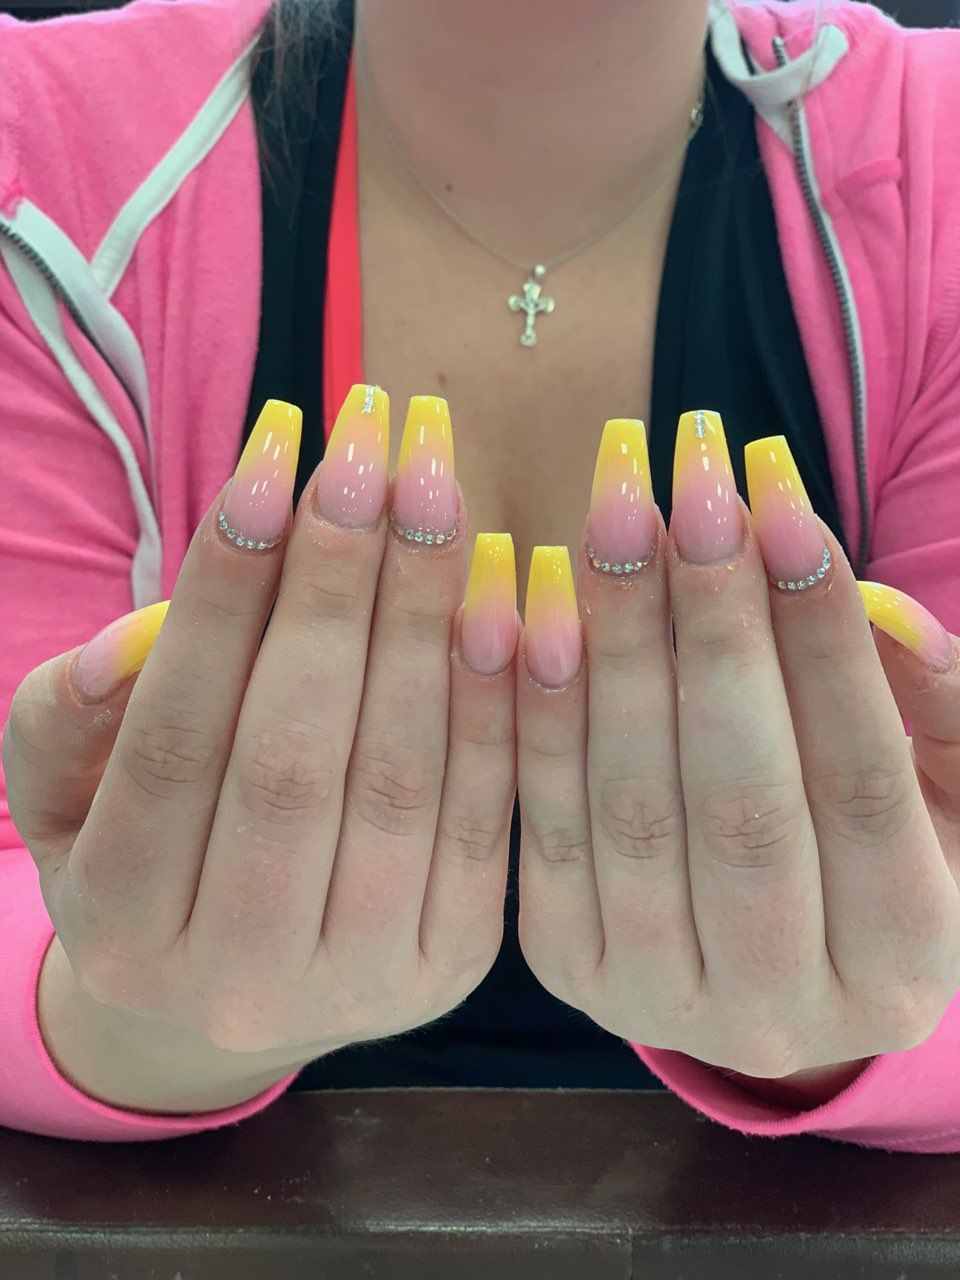 Pin On Envy Spa Nails Nails Salon In Kutztown Pa 19530